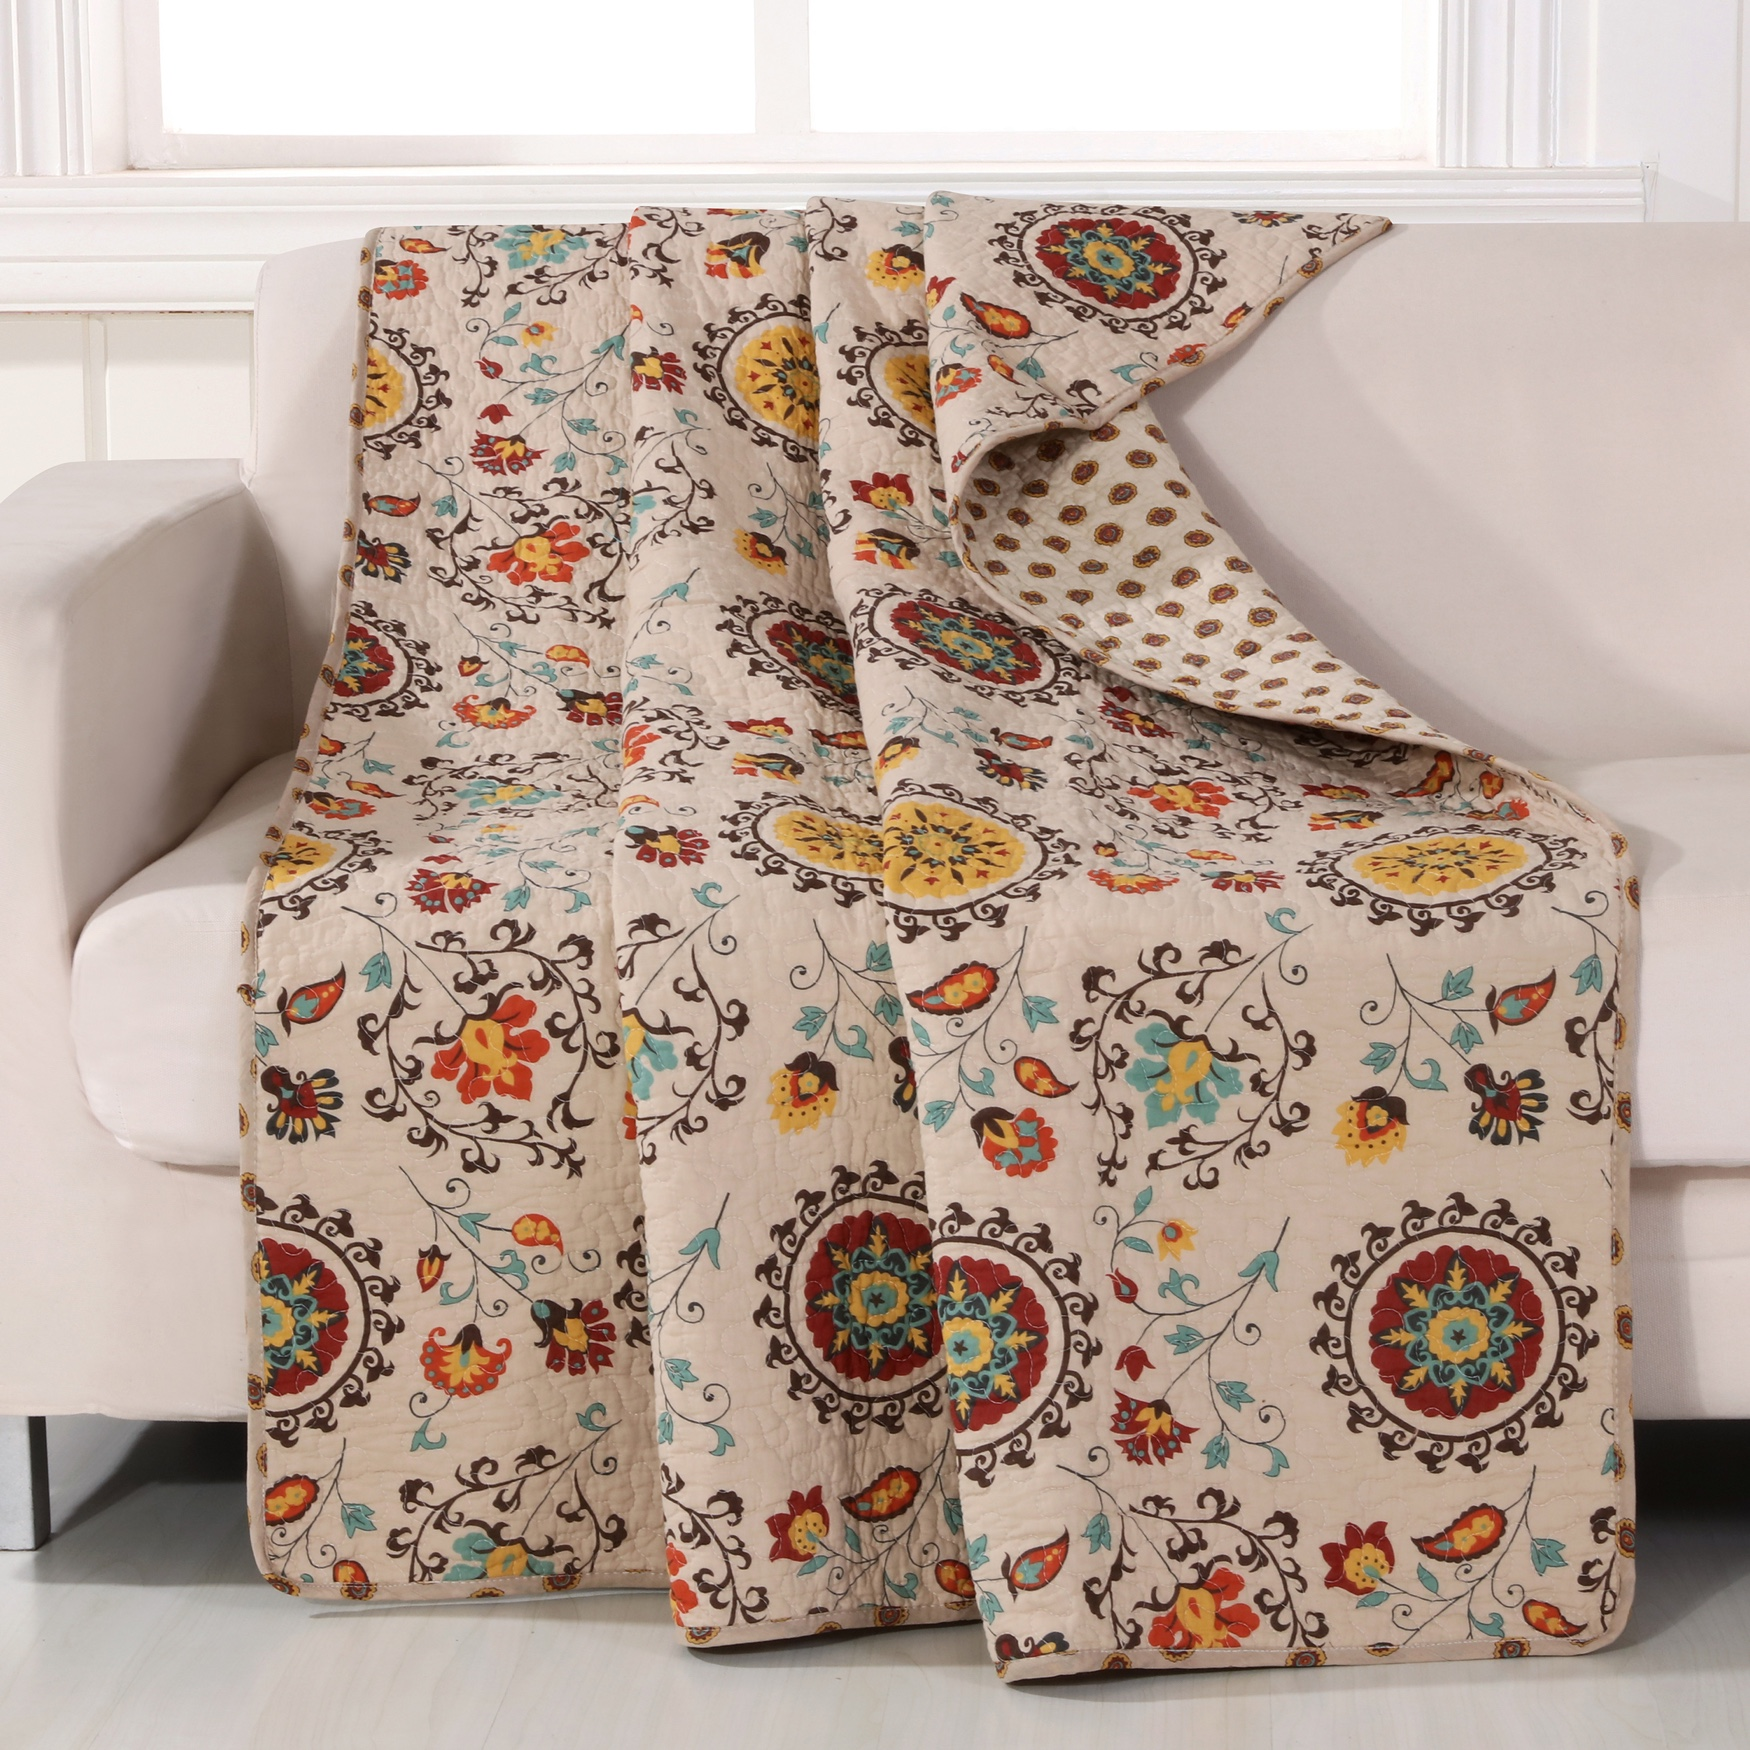 Greenland Home Fashions Andorra Quilted Throw Blanket